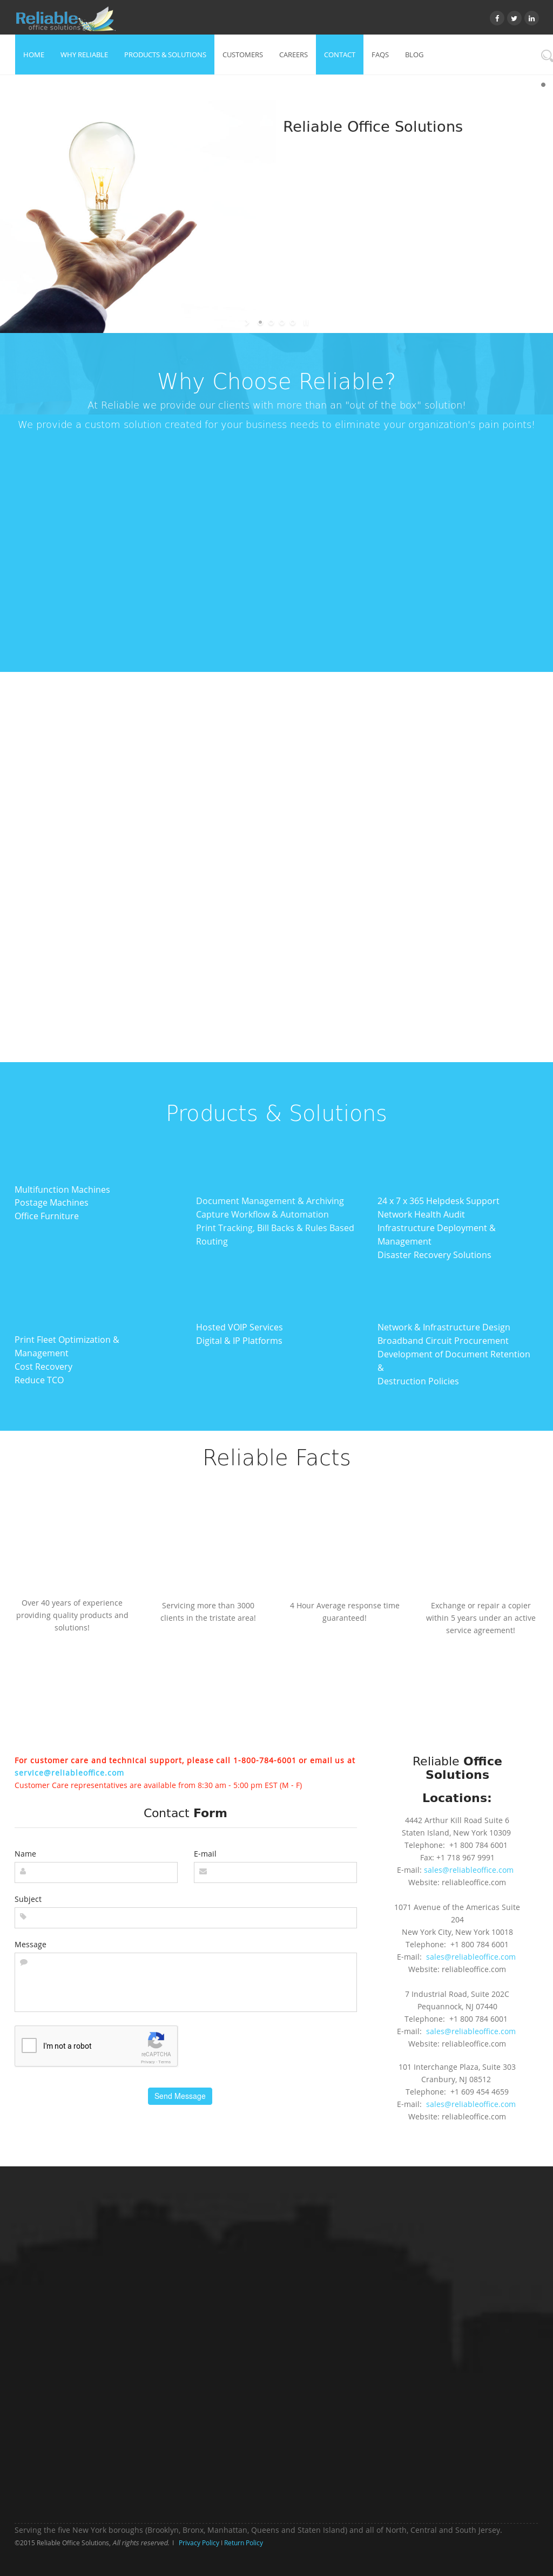 Reliable Office Systems Supplies Website History